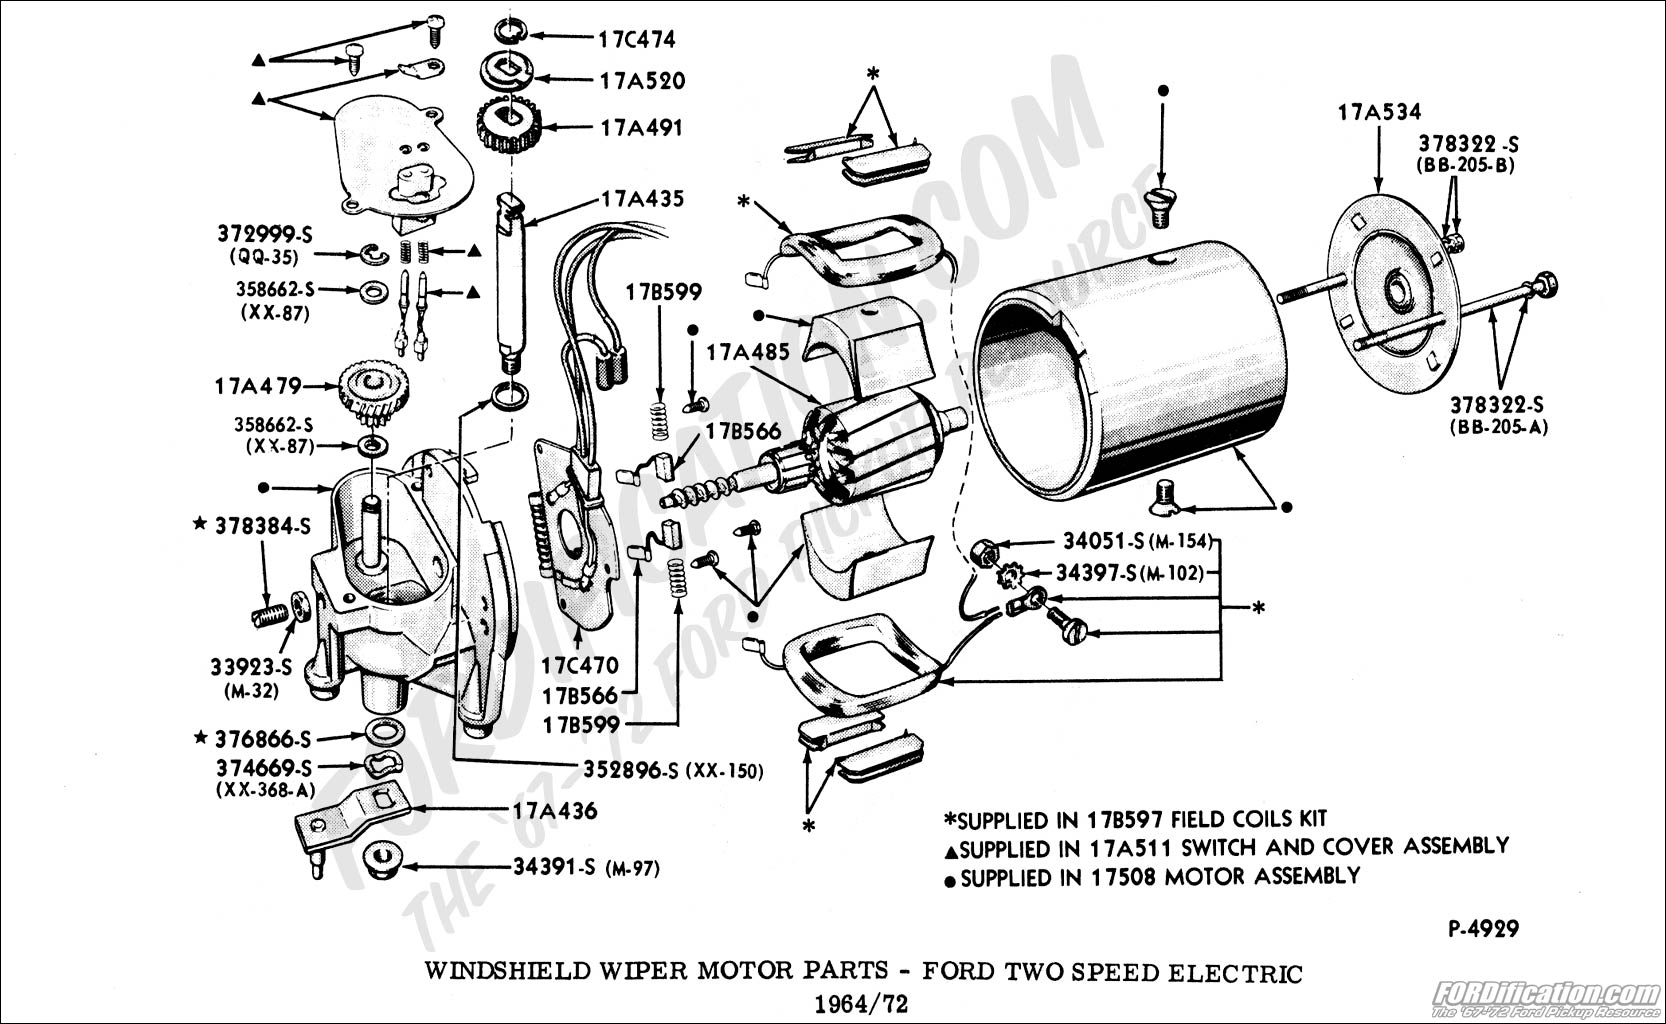 Ford 390 Starter Solenoid Wiring Diagram from www.fordification.com